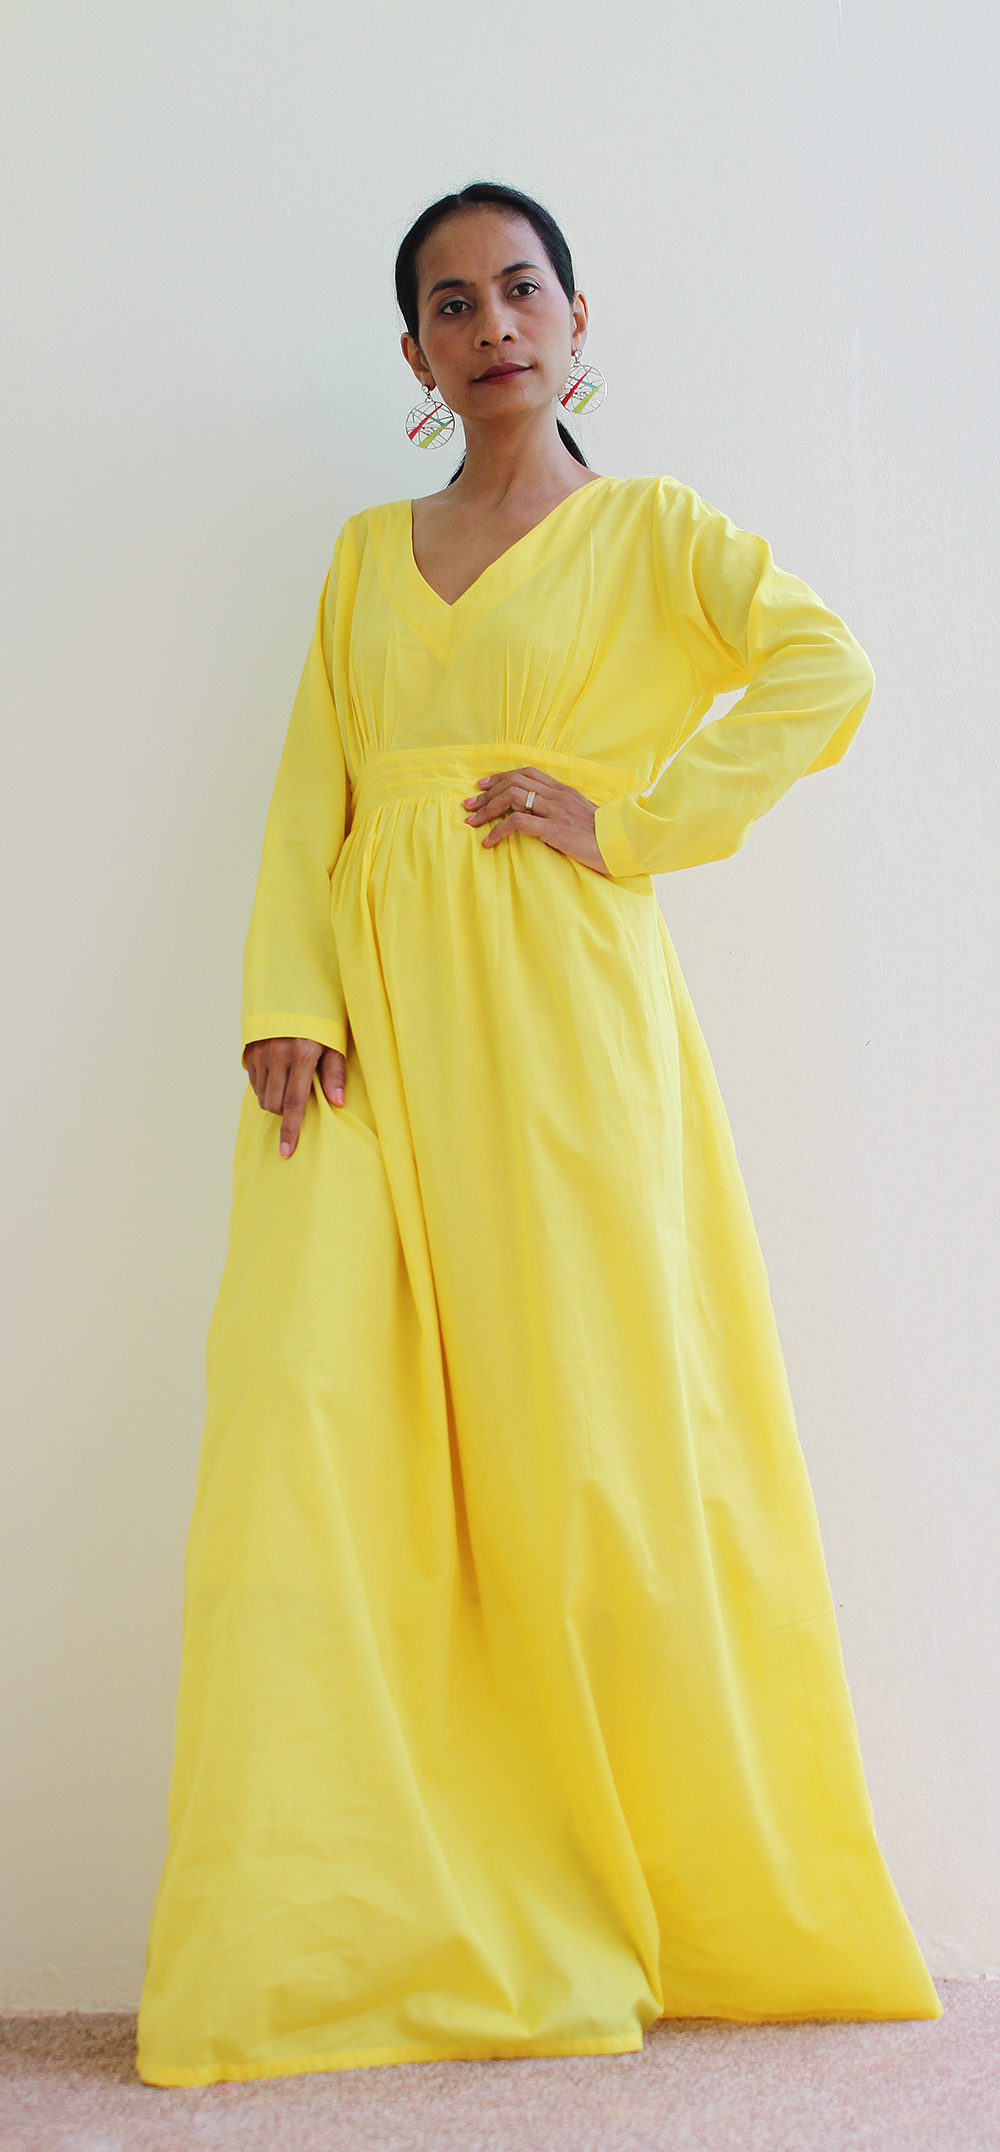 1db6c7eec0d8 Yeloow Maxi Dress - Long Sleeved Maxi Dress : Feel Good Collection ...